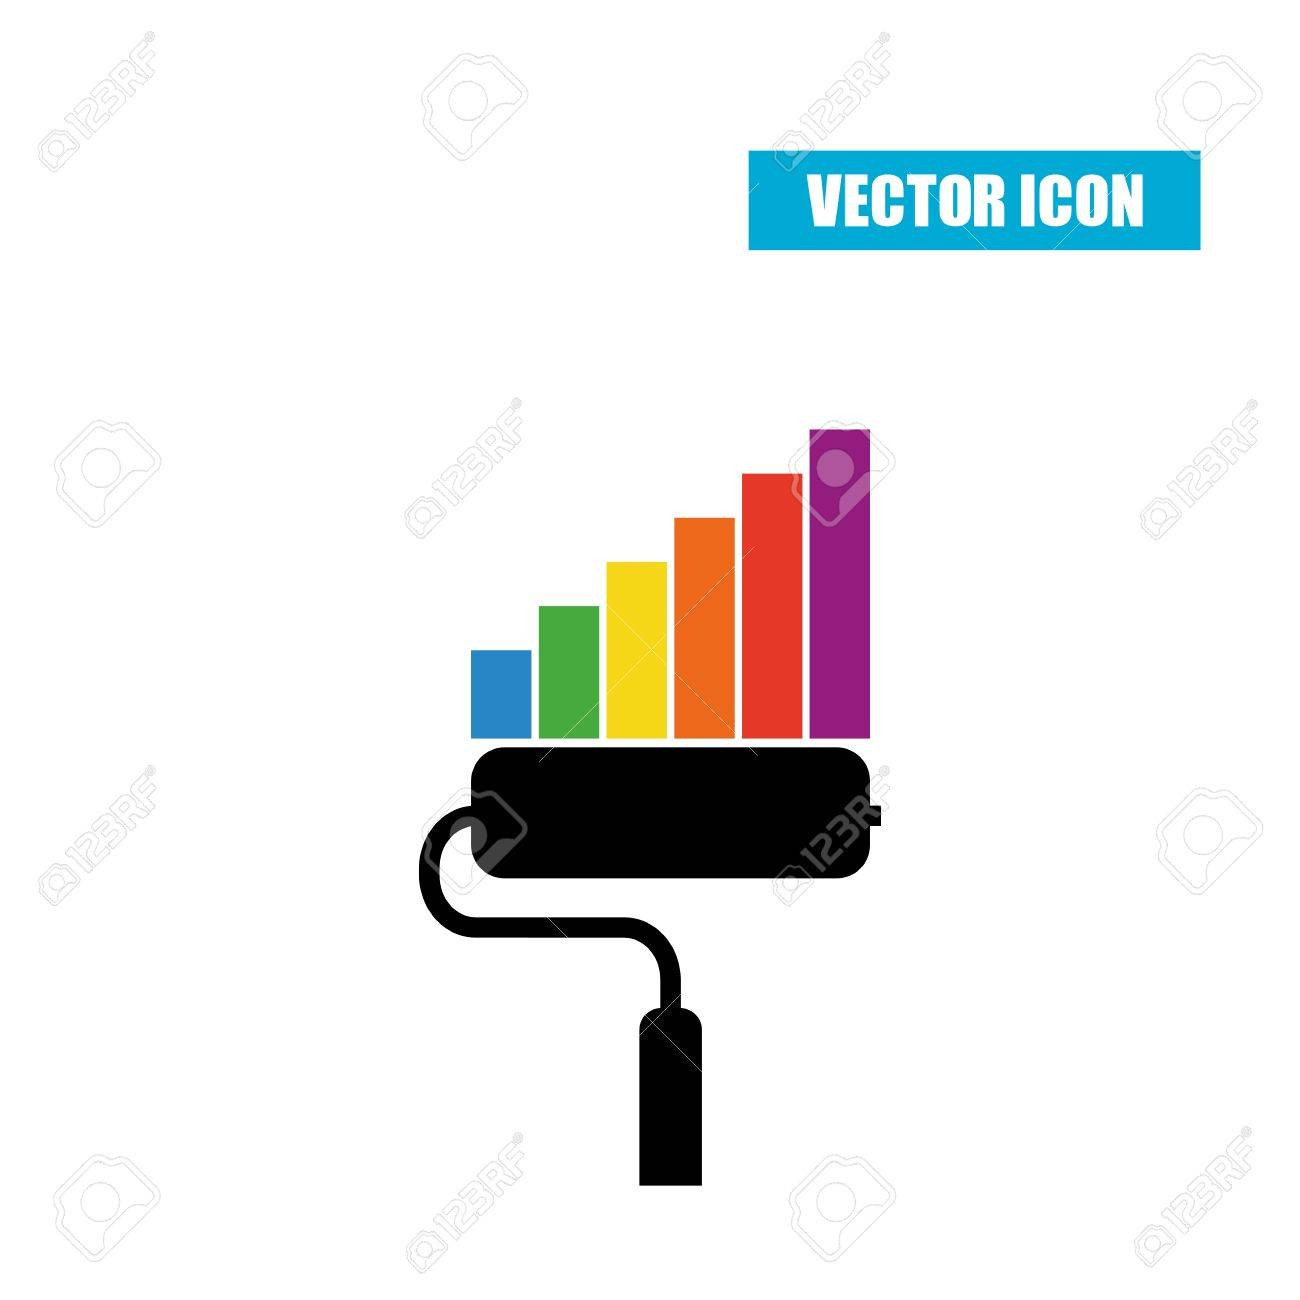 Drop Shadow Diagram Diy Enthusiasts Wiring Diagrams 1986 Honda Paint Roller Statistic Chart Flat Icon With Isolated Rh 123rf Com